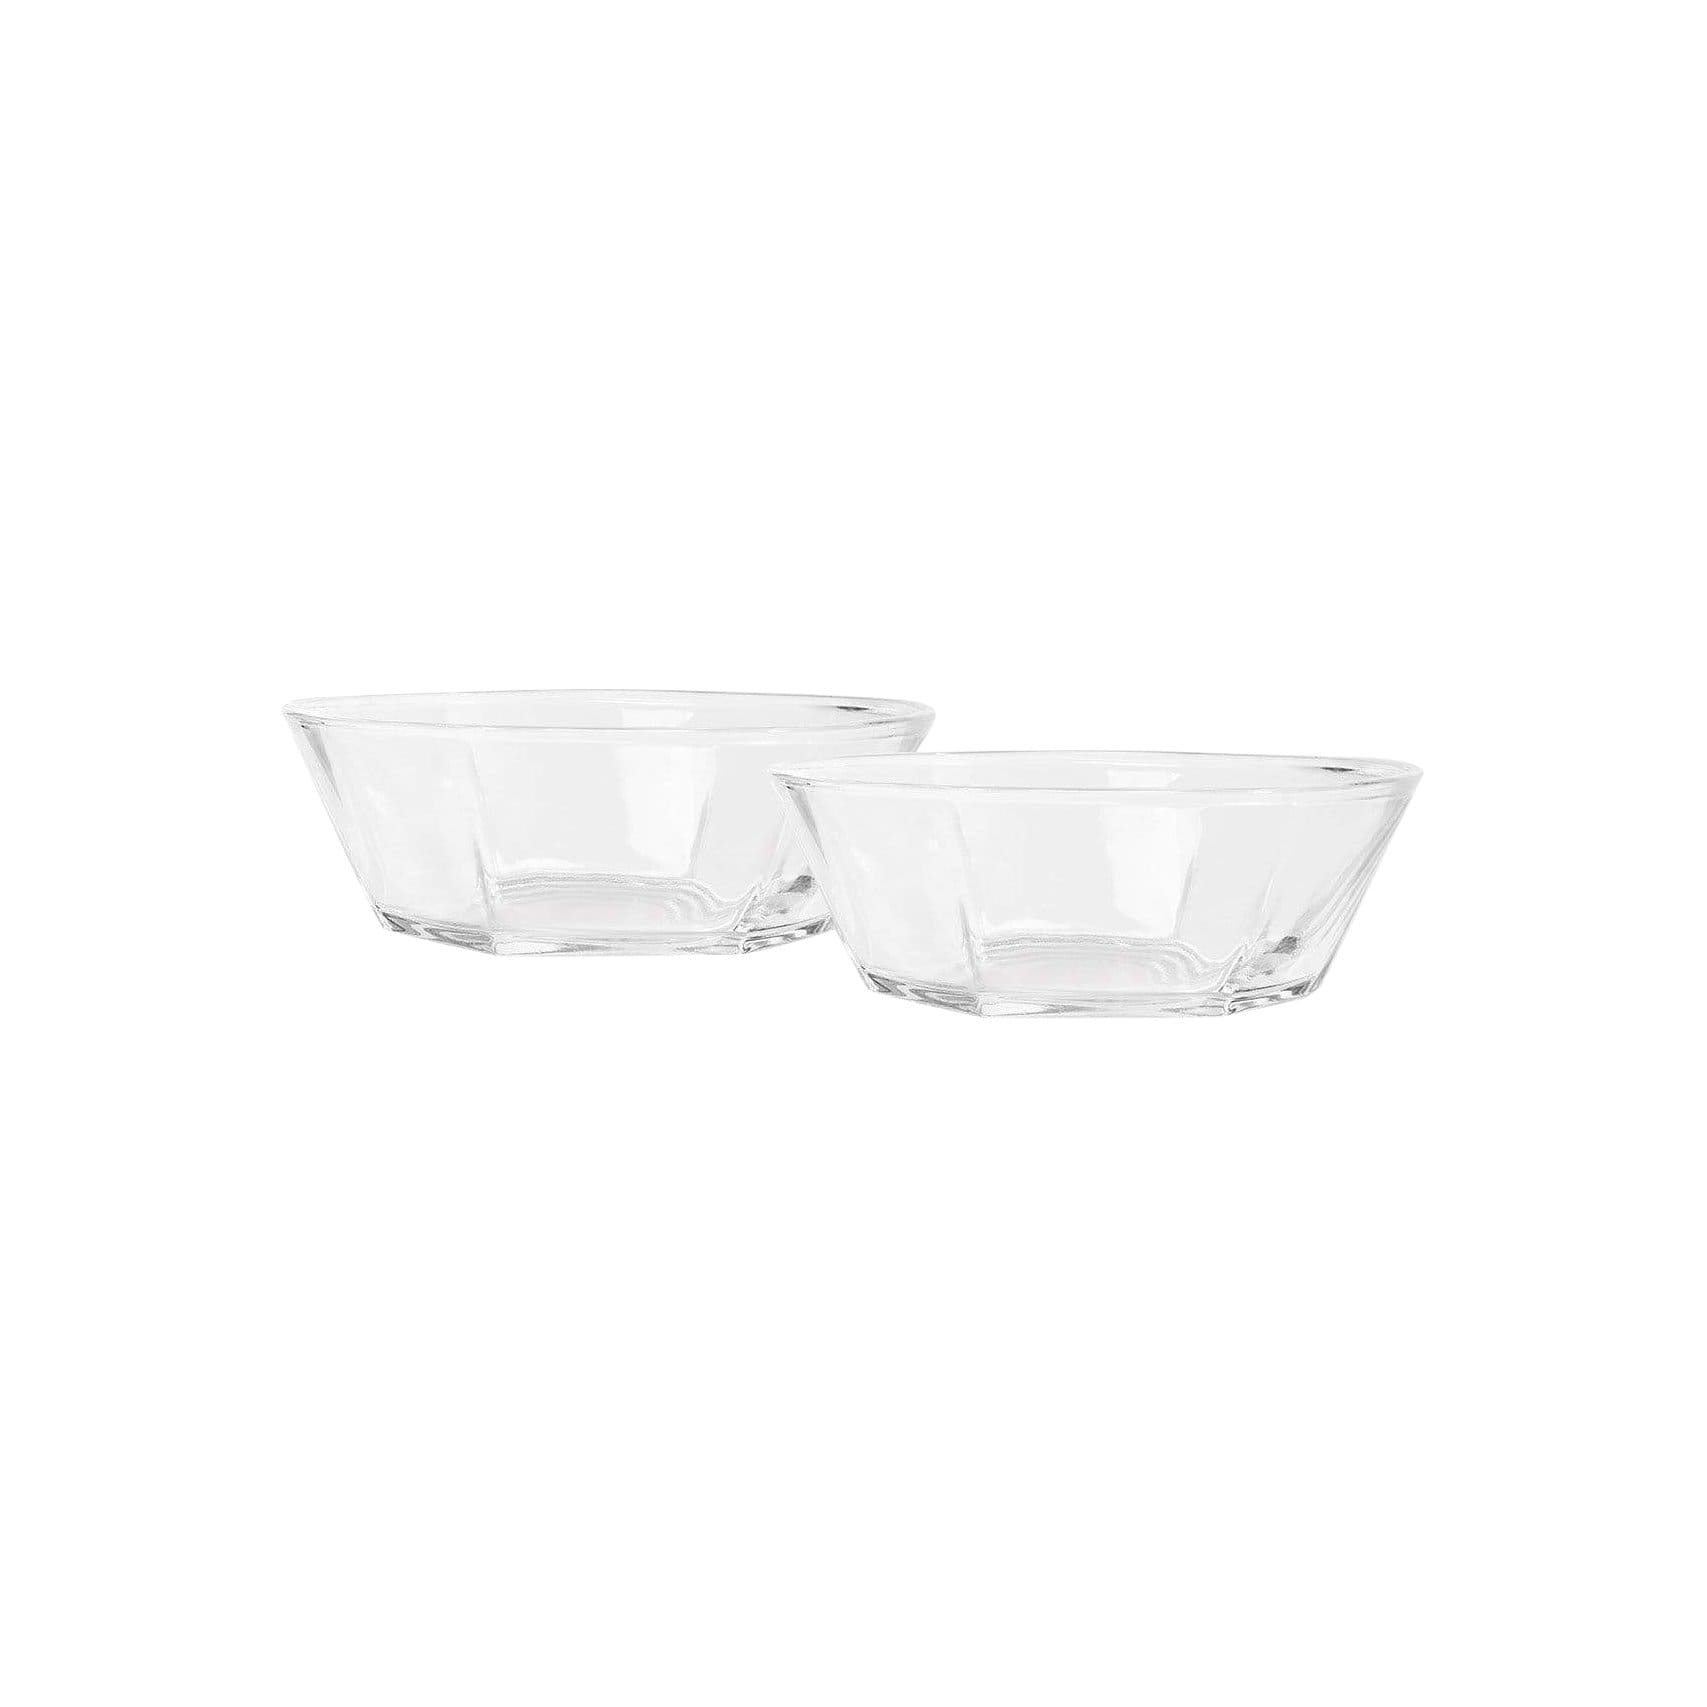 Puik Design Serveware Lucent Bowls - Set of 2